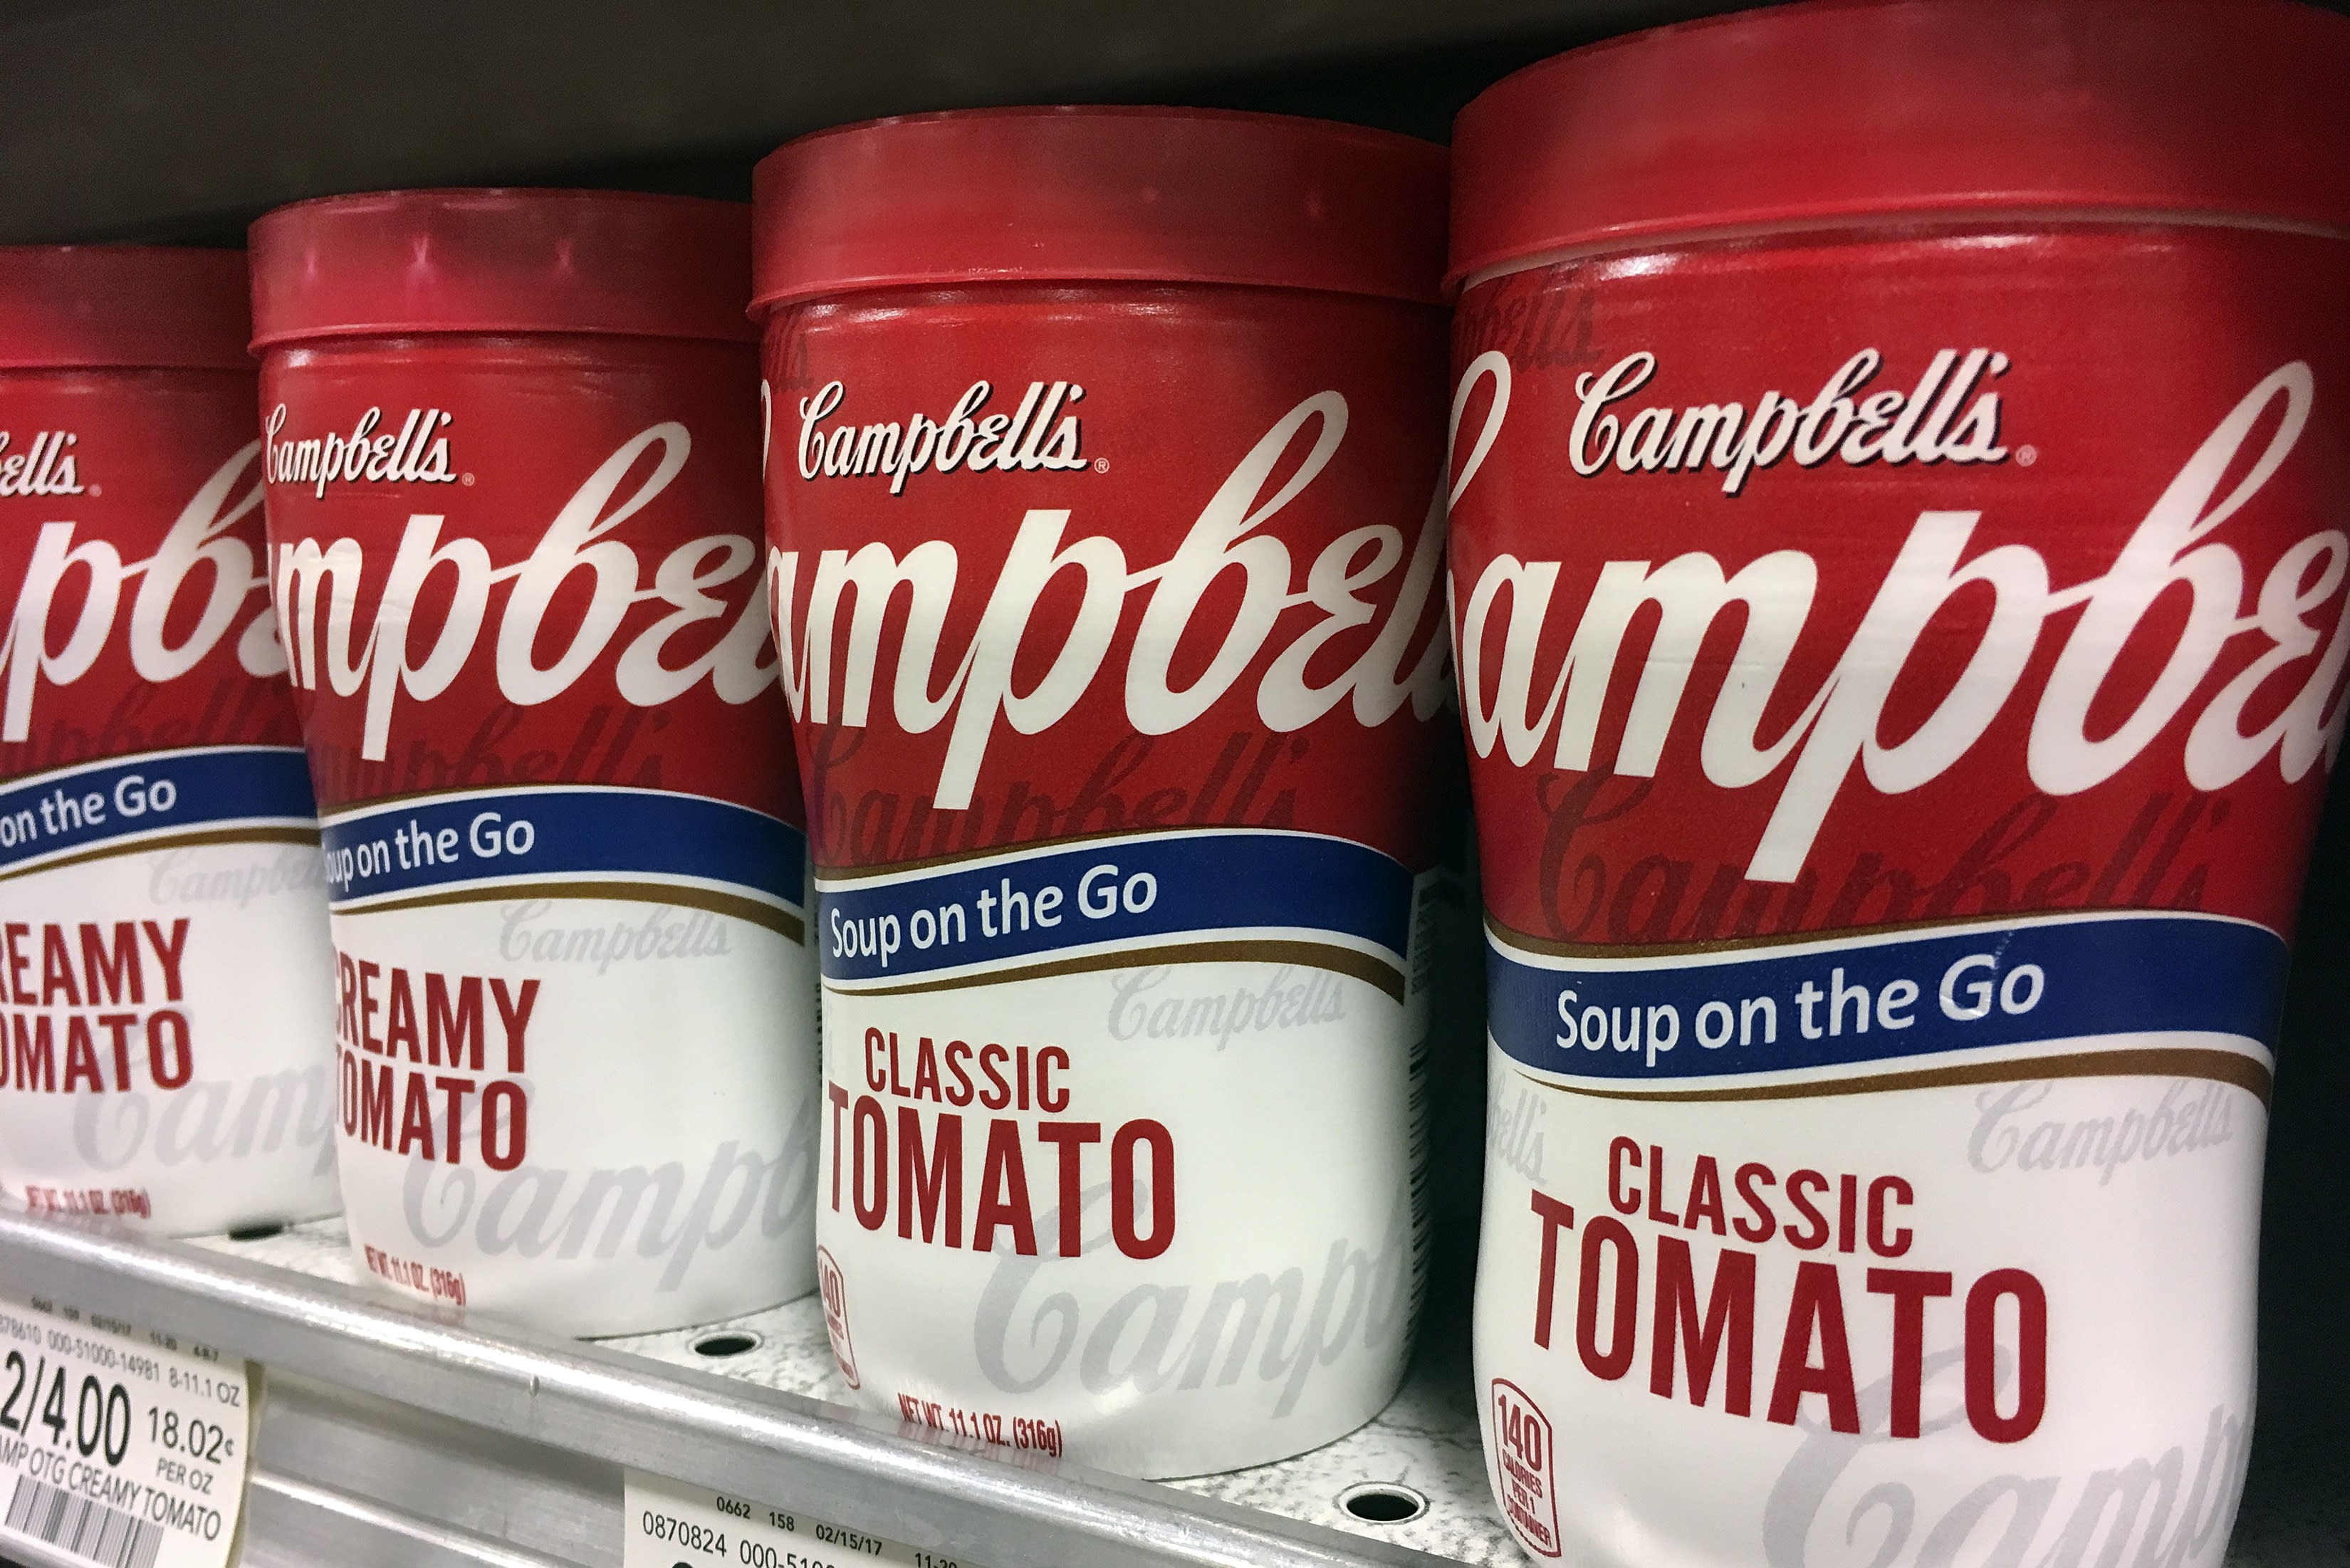 campbells soup company The company was selling 16 million cans of soup a year by 1904 the company was incorporated as the campbell soup company in 1922 the next two decades saw campbell expanding at breakneck speed.